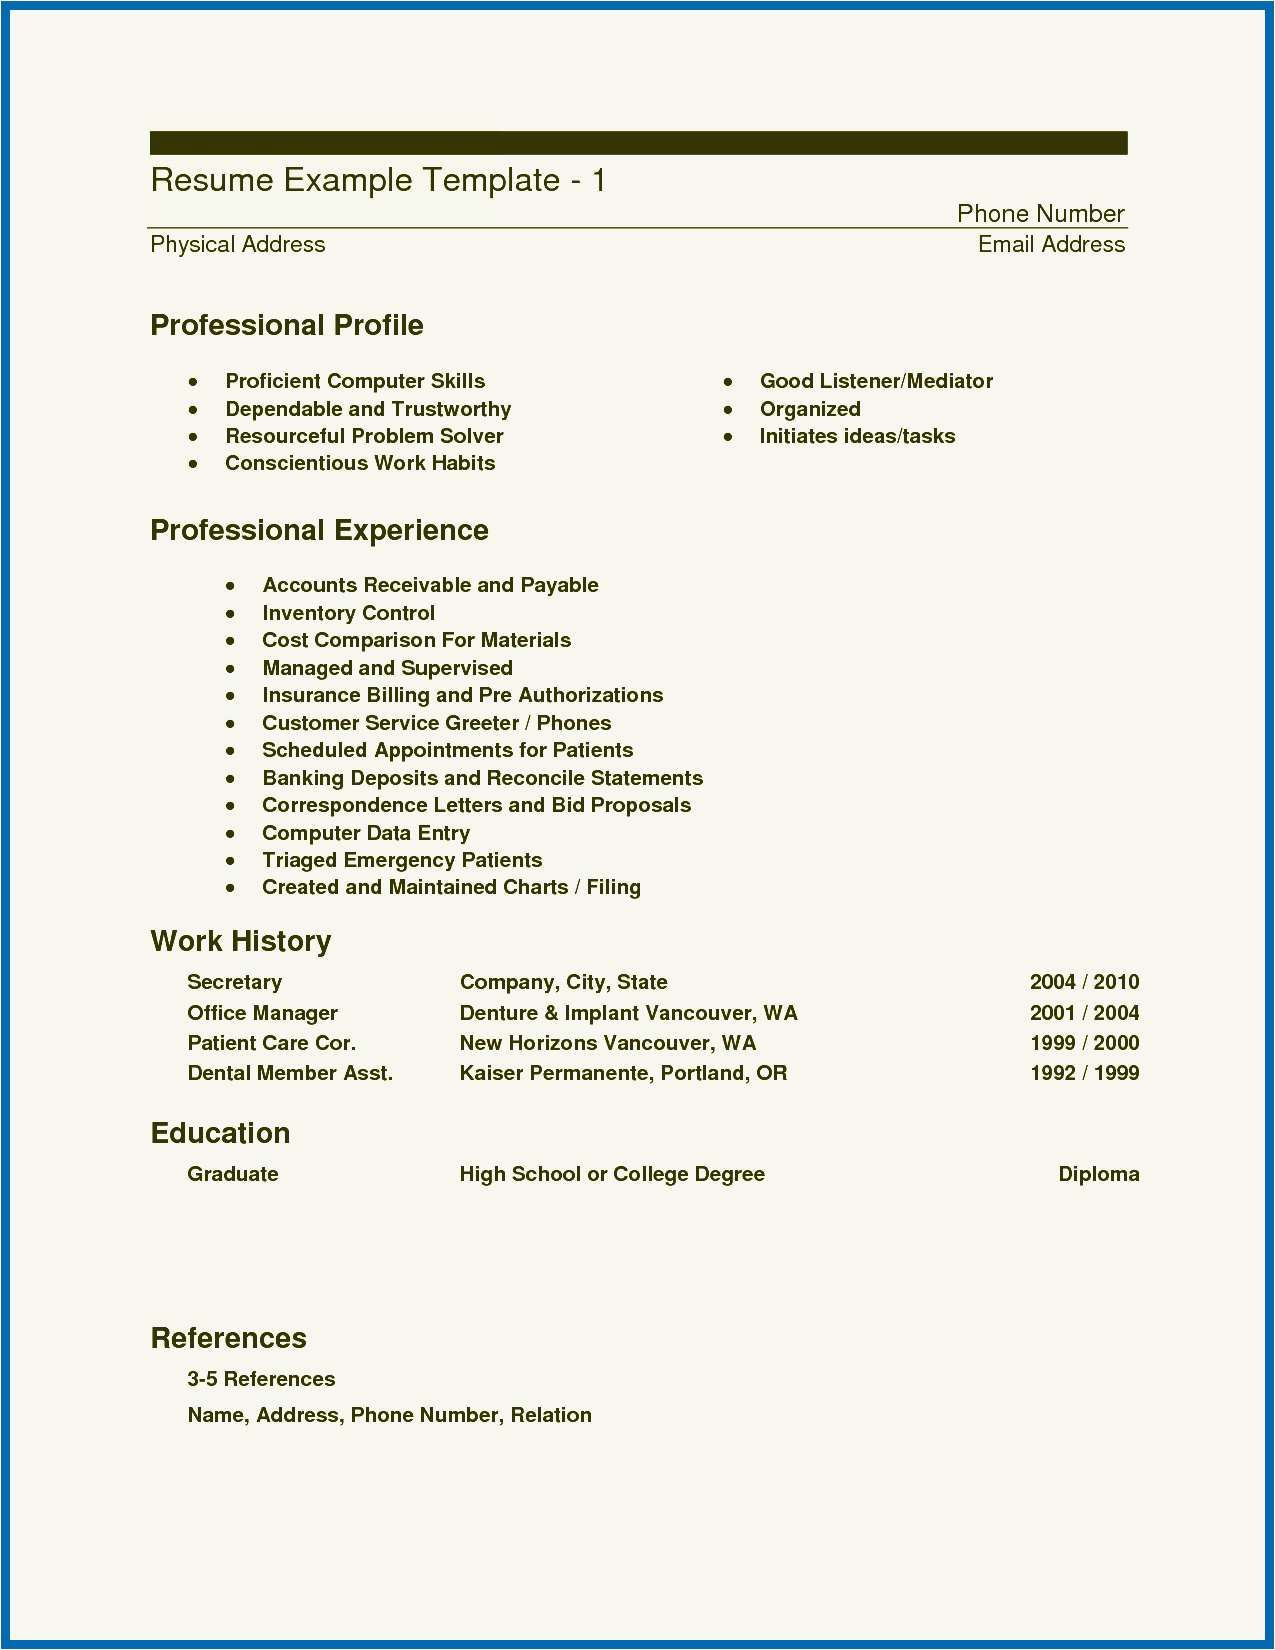 76 Unique Photography Of Data Entry Resume Skills Examples Check